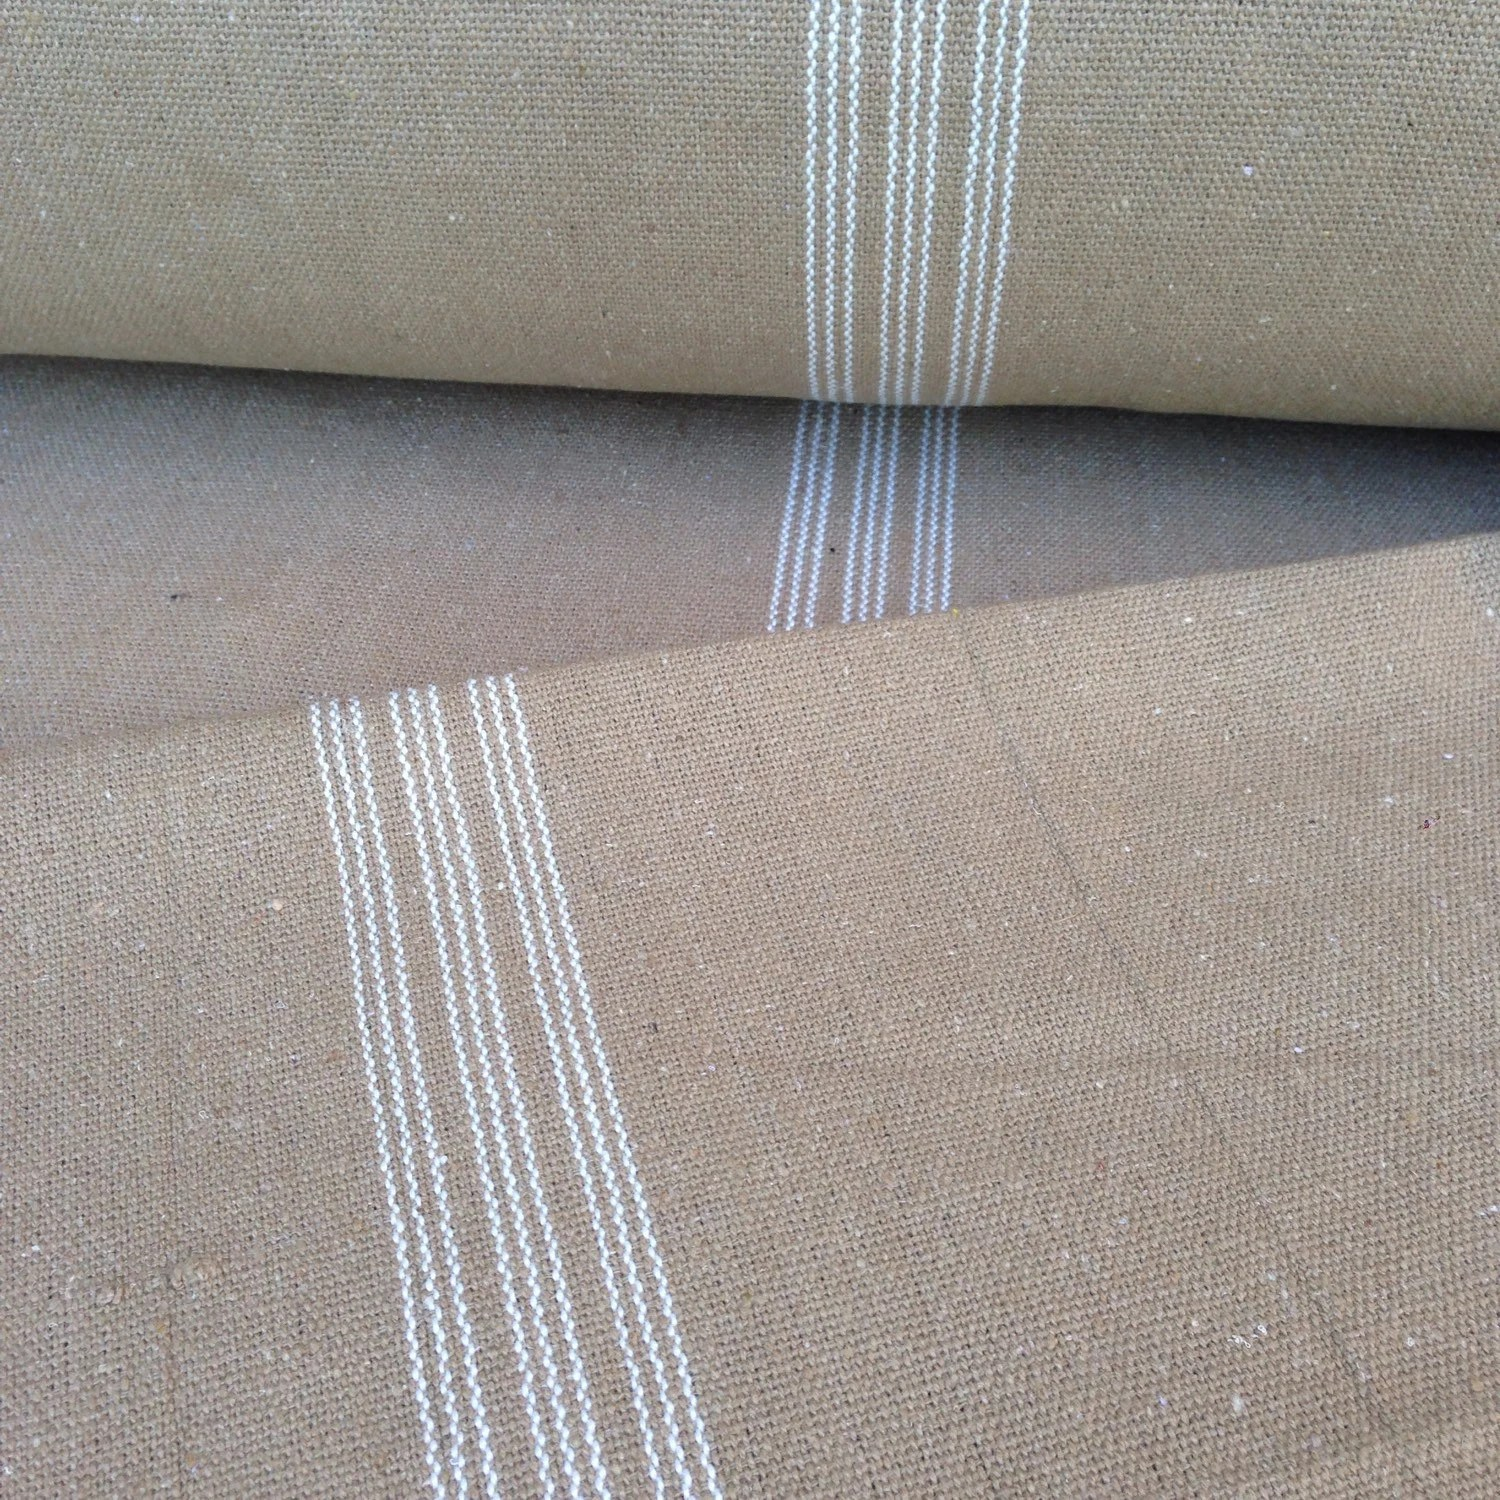 Flour Sack Fabric By The Yard Grain Sack Fabric Sold By The Yard White Stripes Tan Vintage